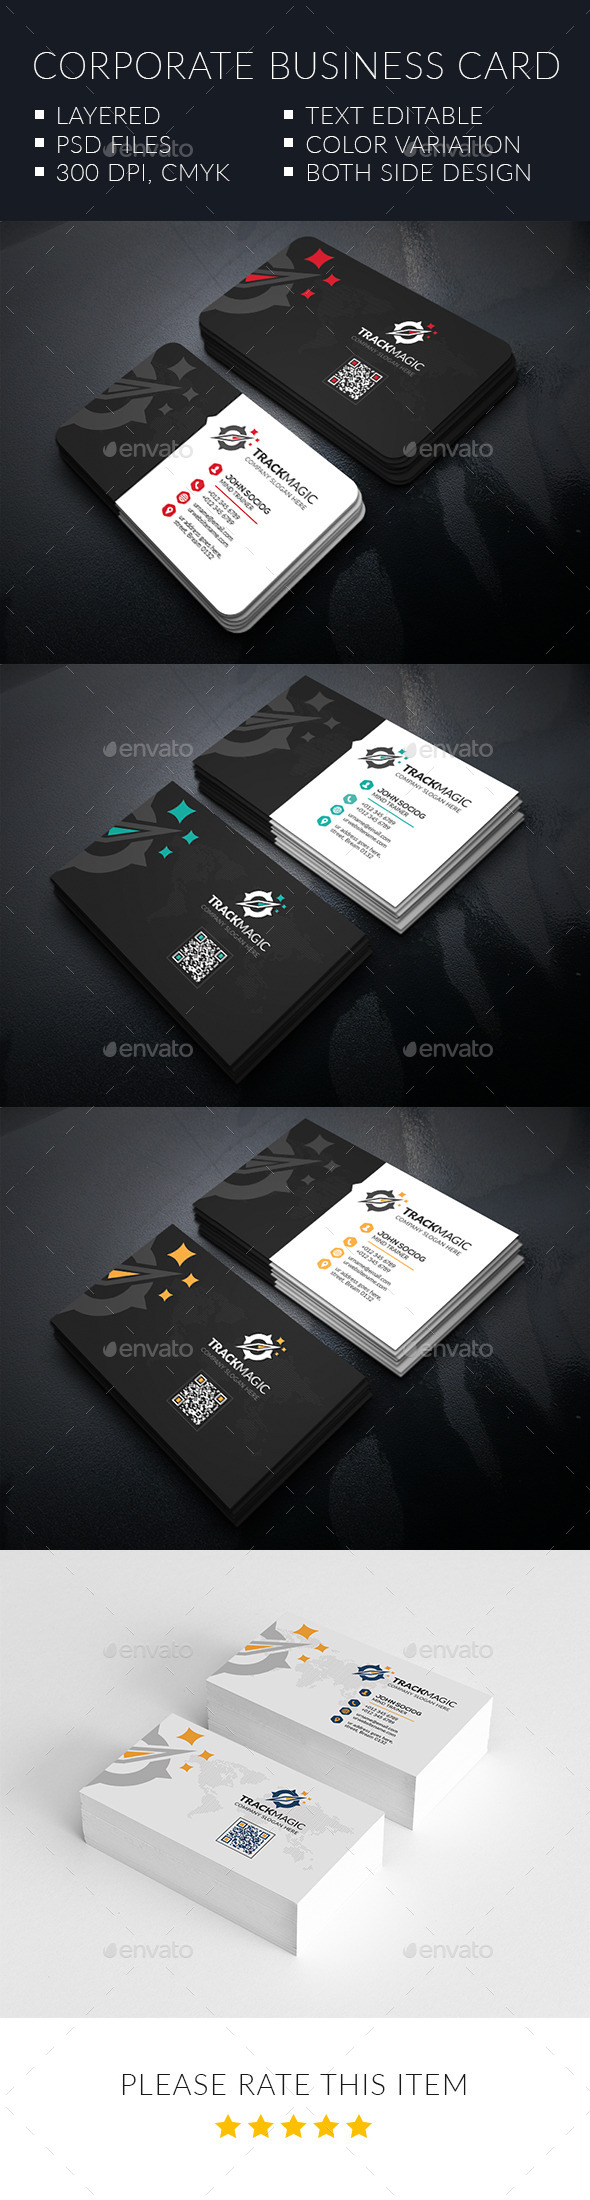 Track Magic Corporate Business Cards - Corporate Business Cards